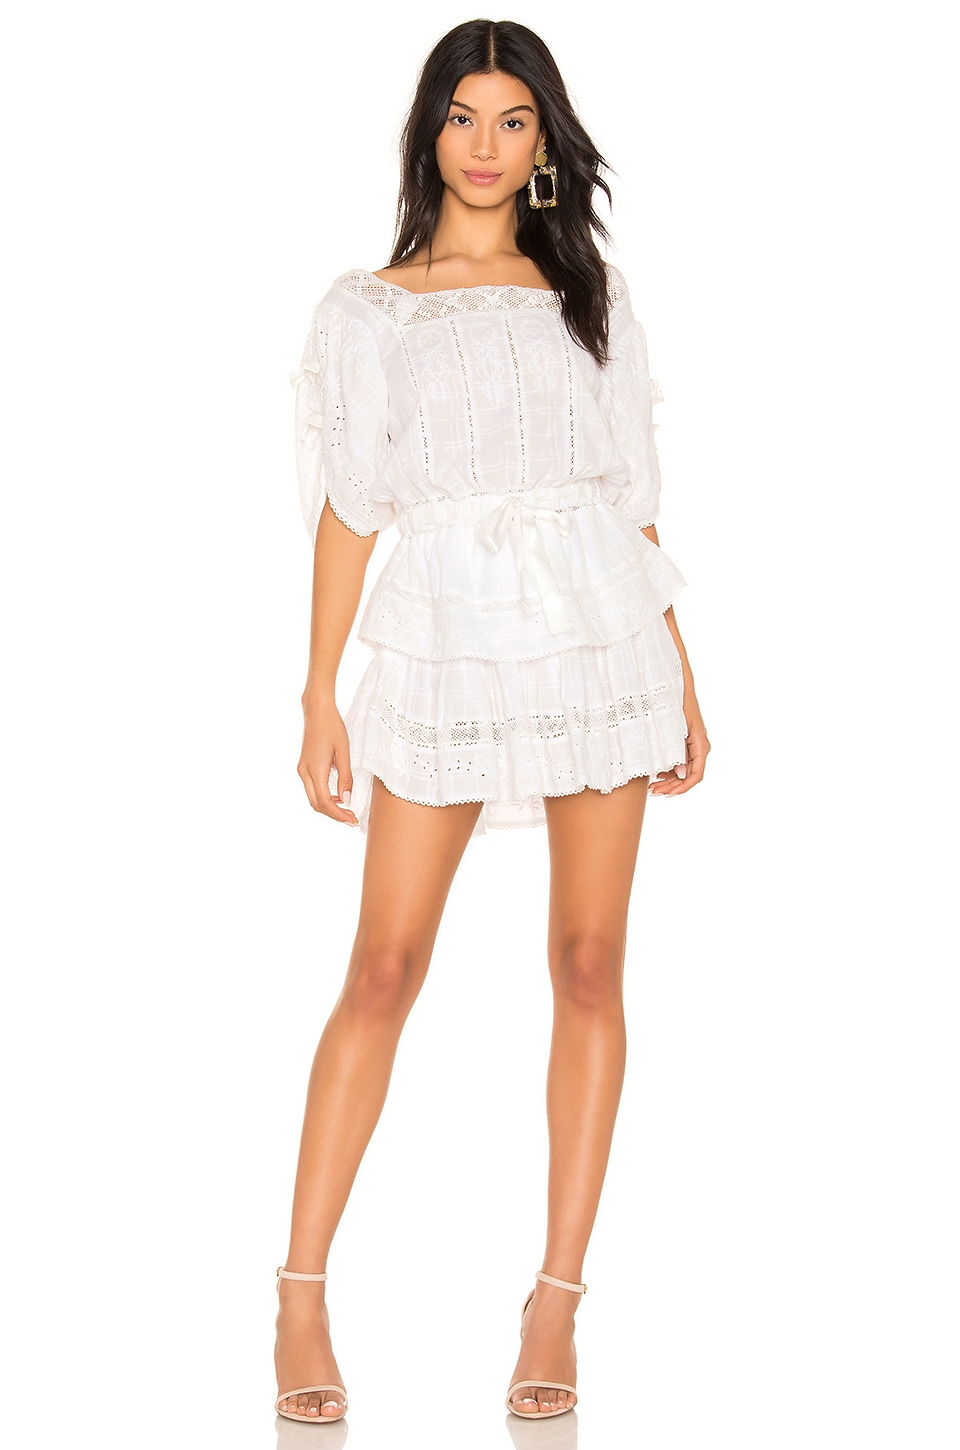 LoveShackFancy Dorothy Dress in White